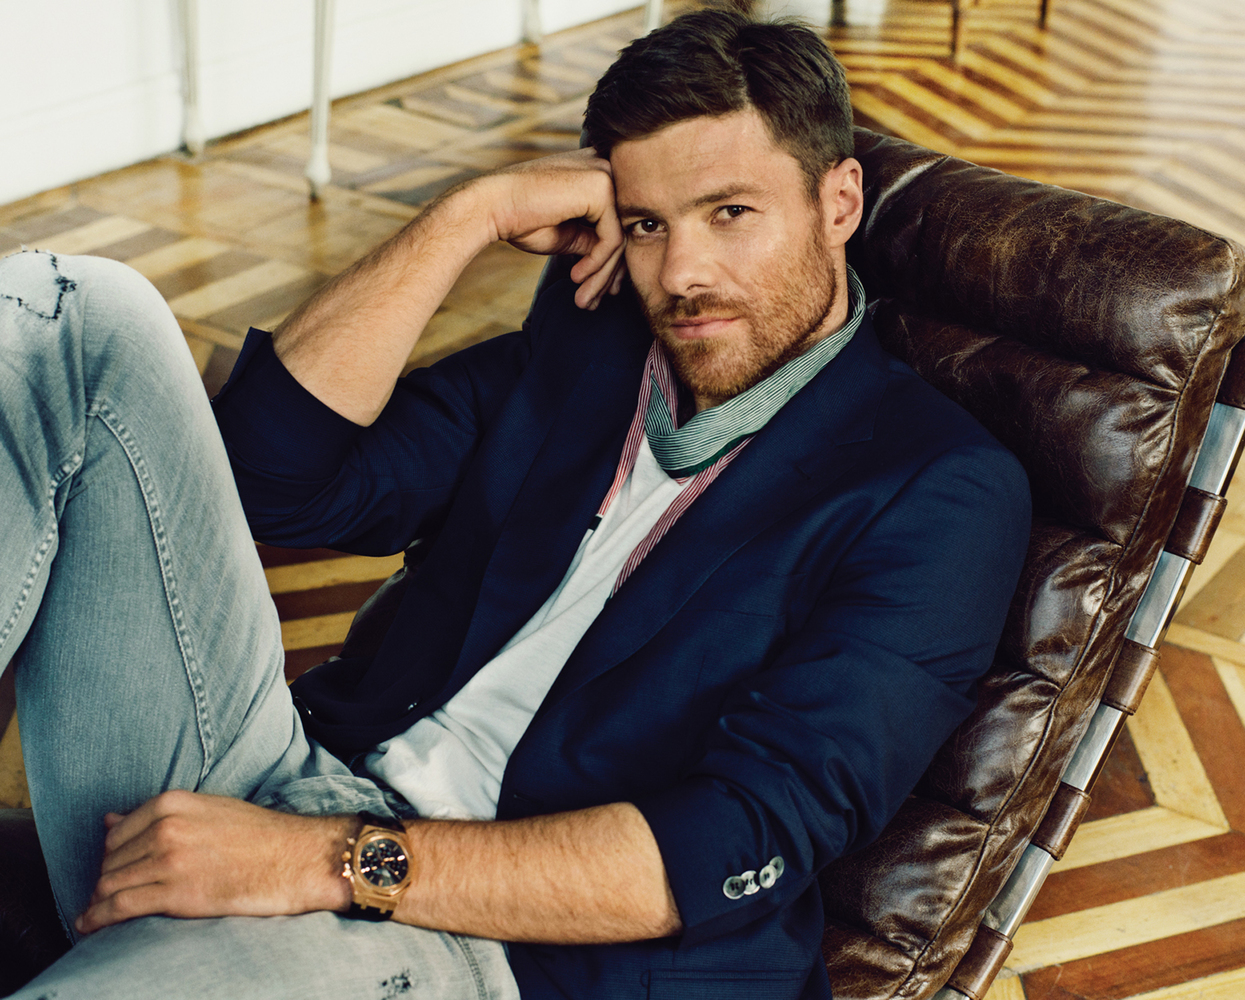 Xabi (Xabier Alonso Olano) - Hottest FIFA Soccer Players for 2014